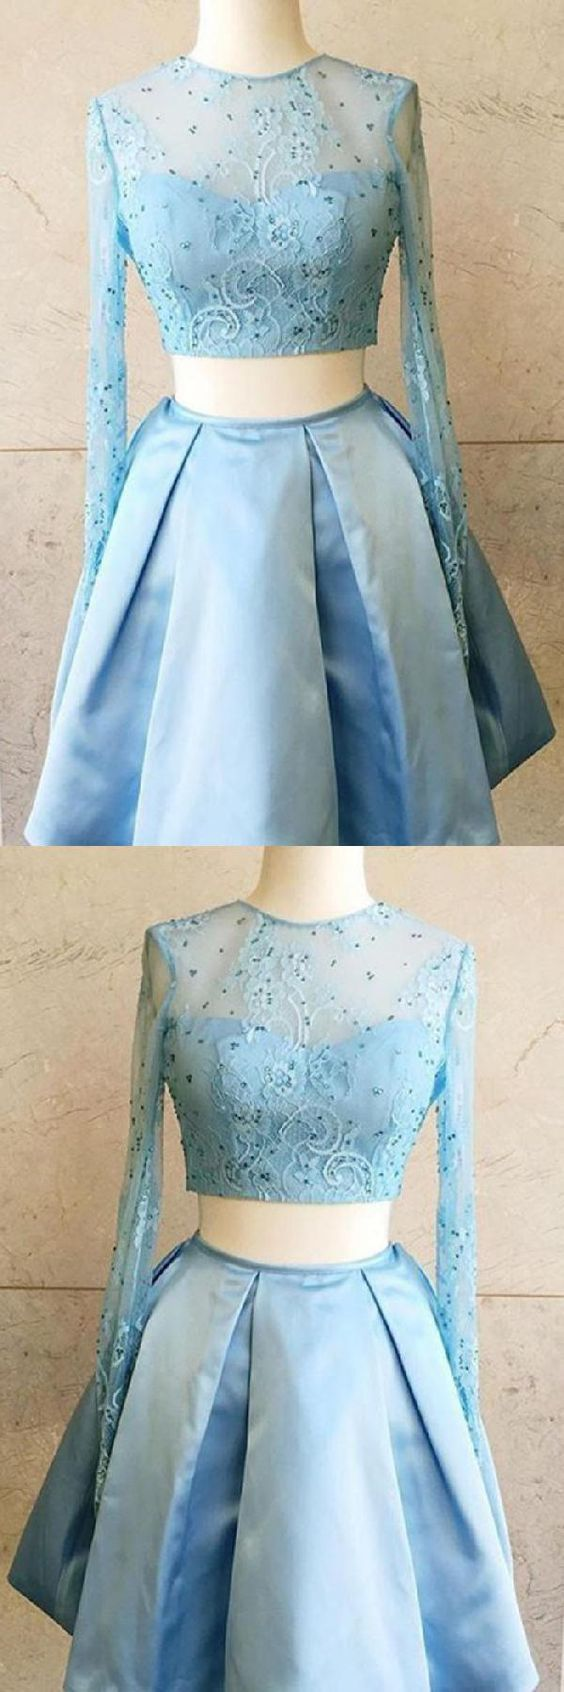 Long Sleeve Blue Two Piece Prom Dress, Beaded Lace Short Homecoming Dress